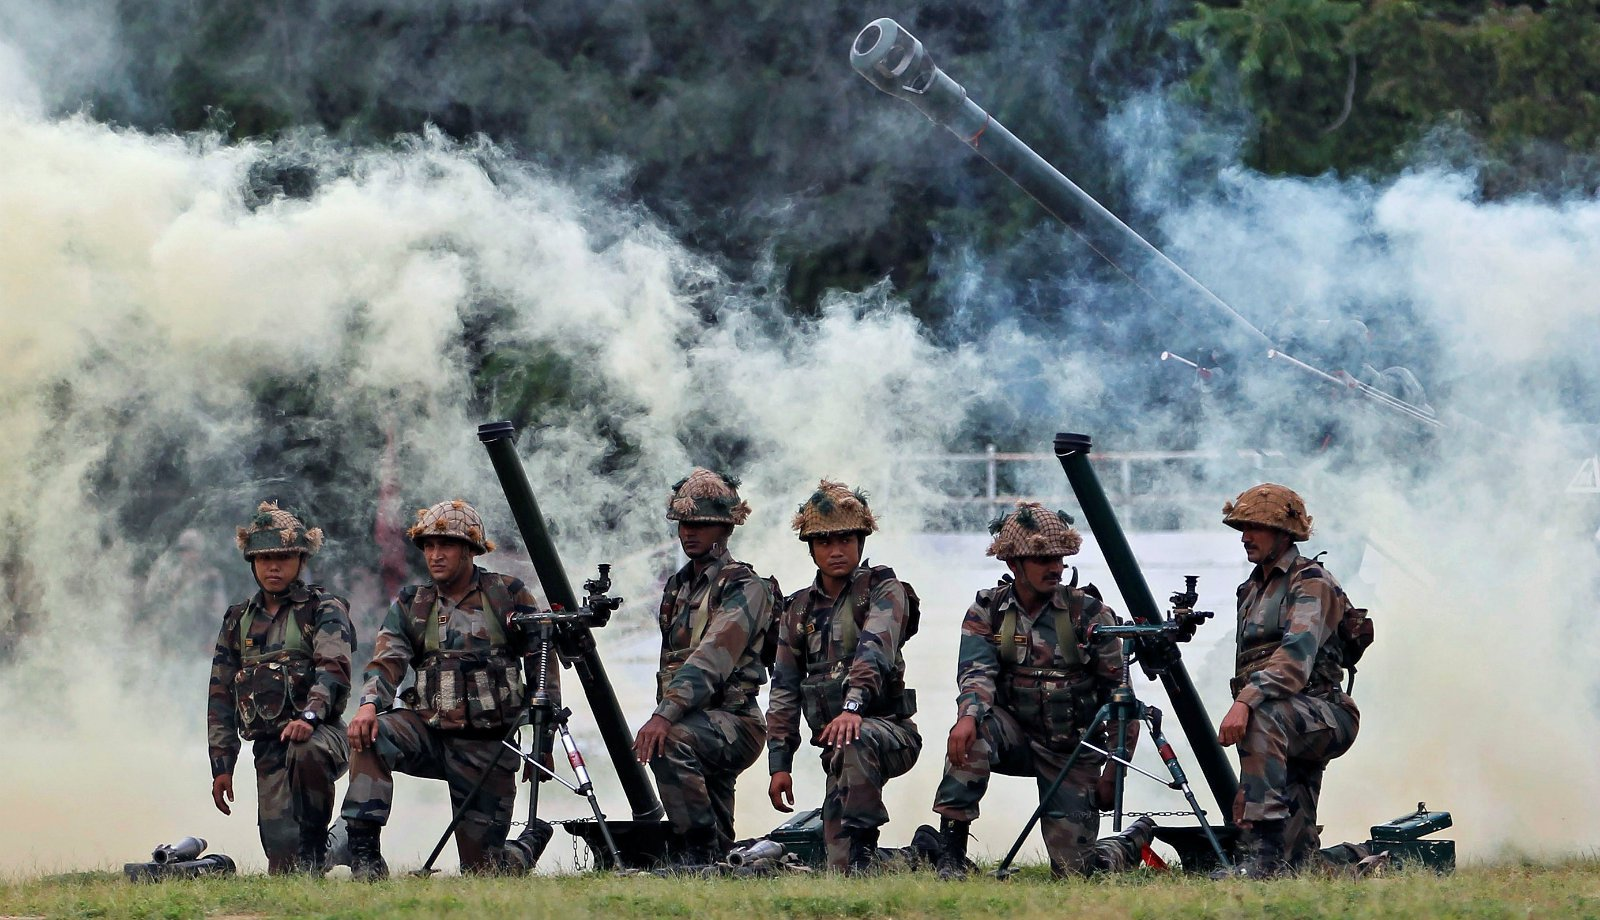 4 hours, choppers and 38 kills: How India avenged the Uri attack